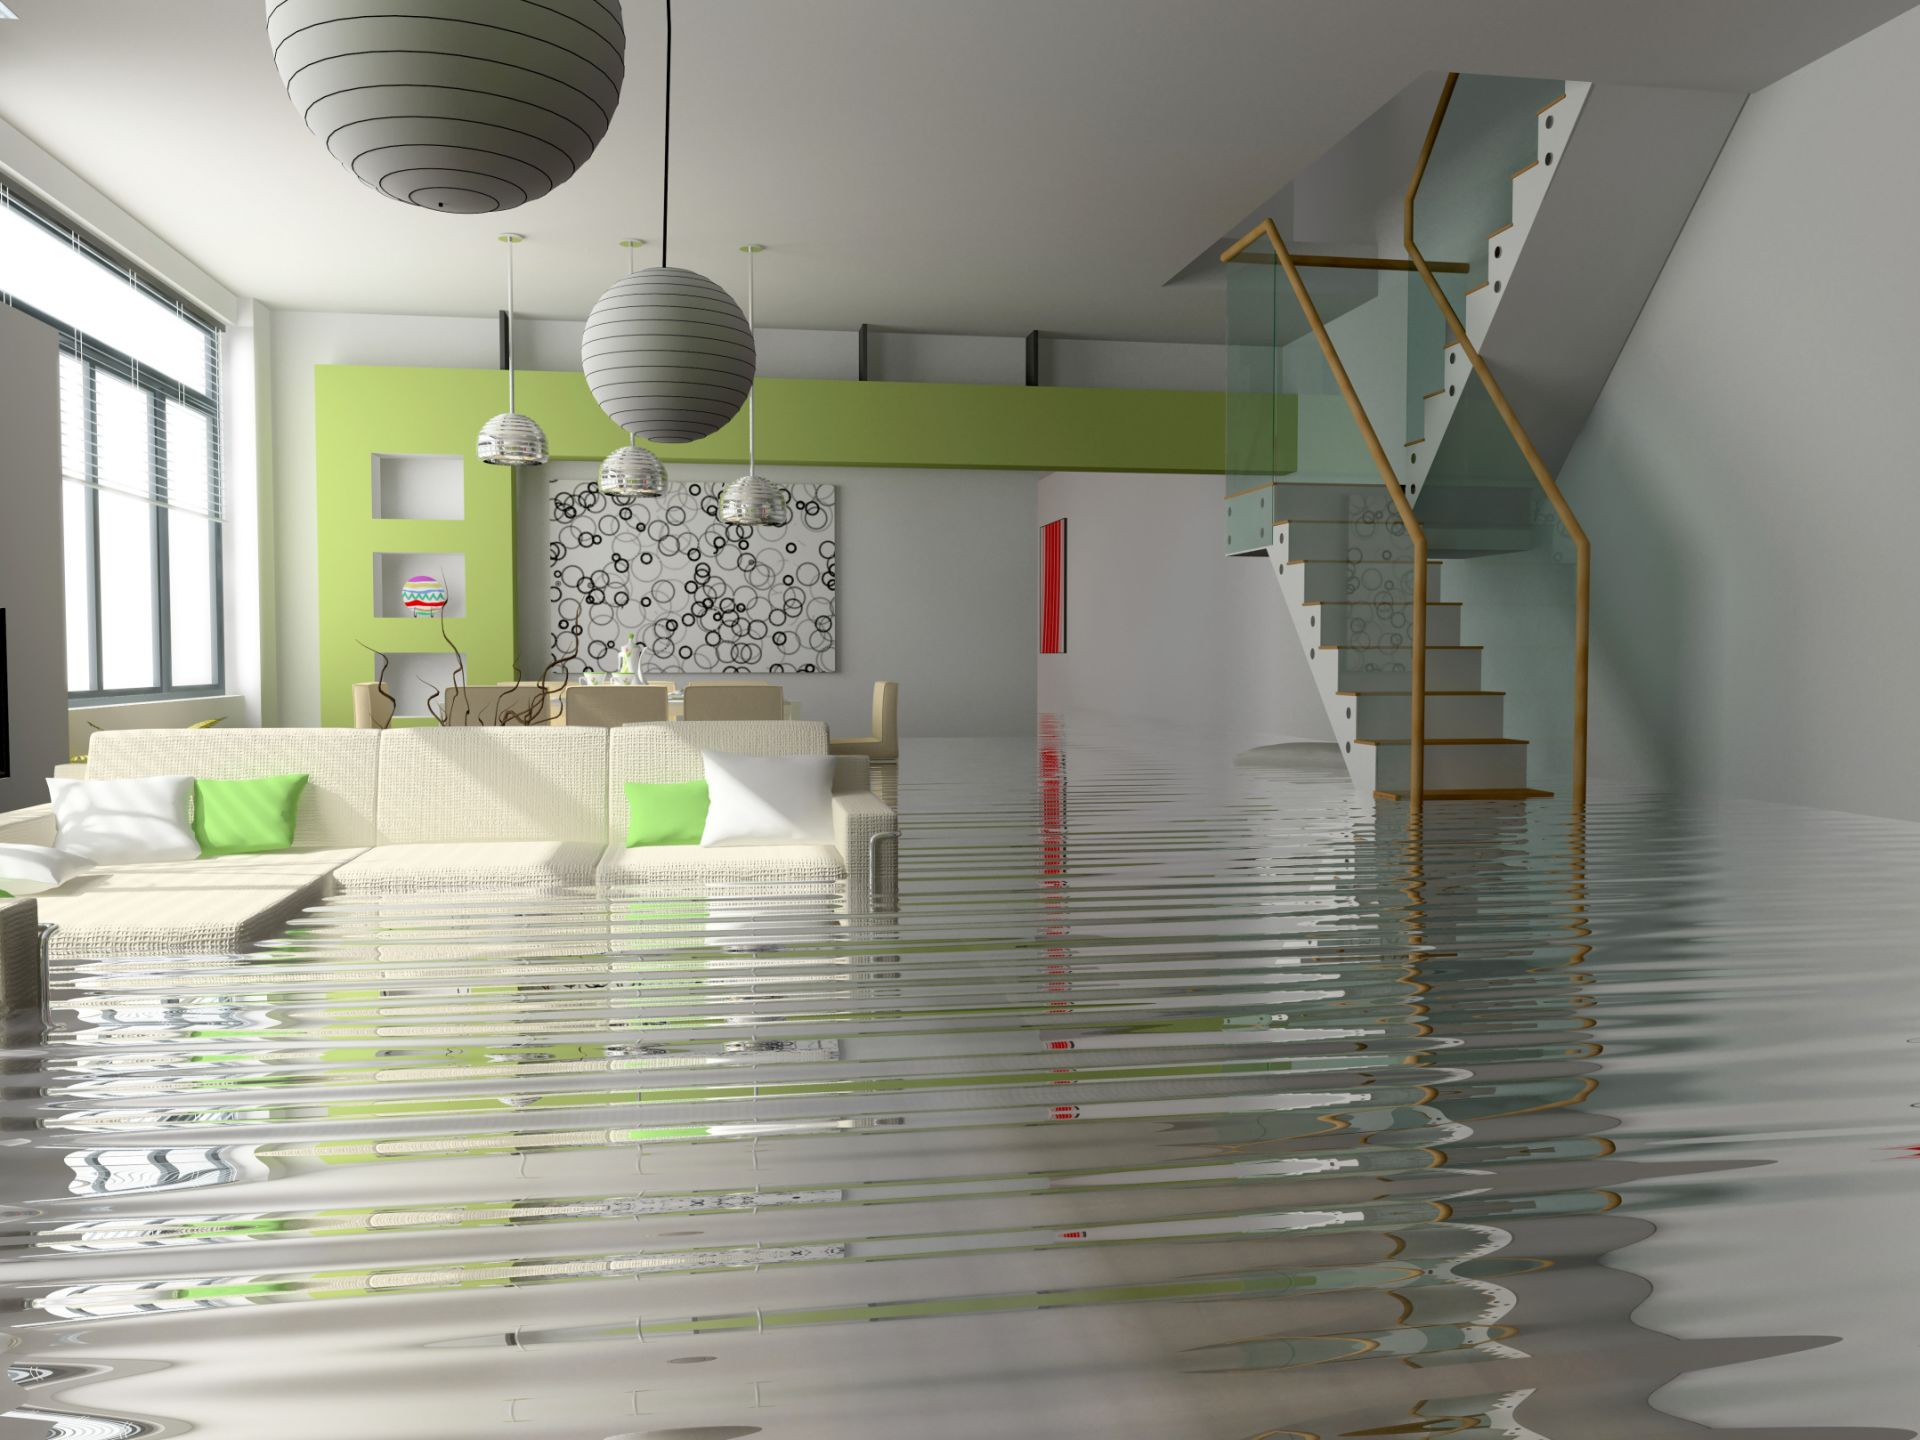 busted pipes and flooded house